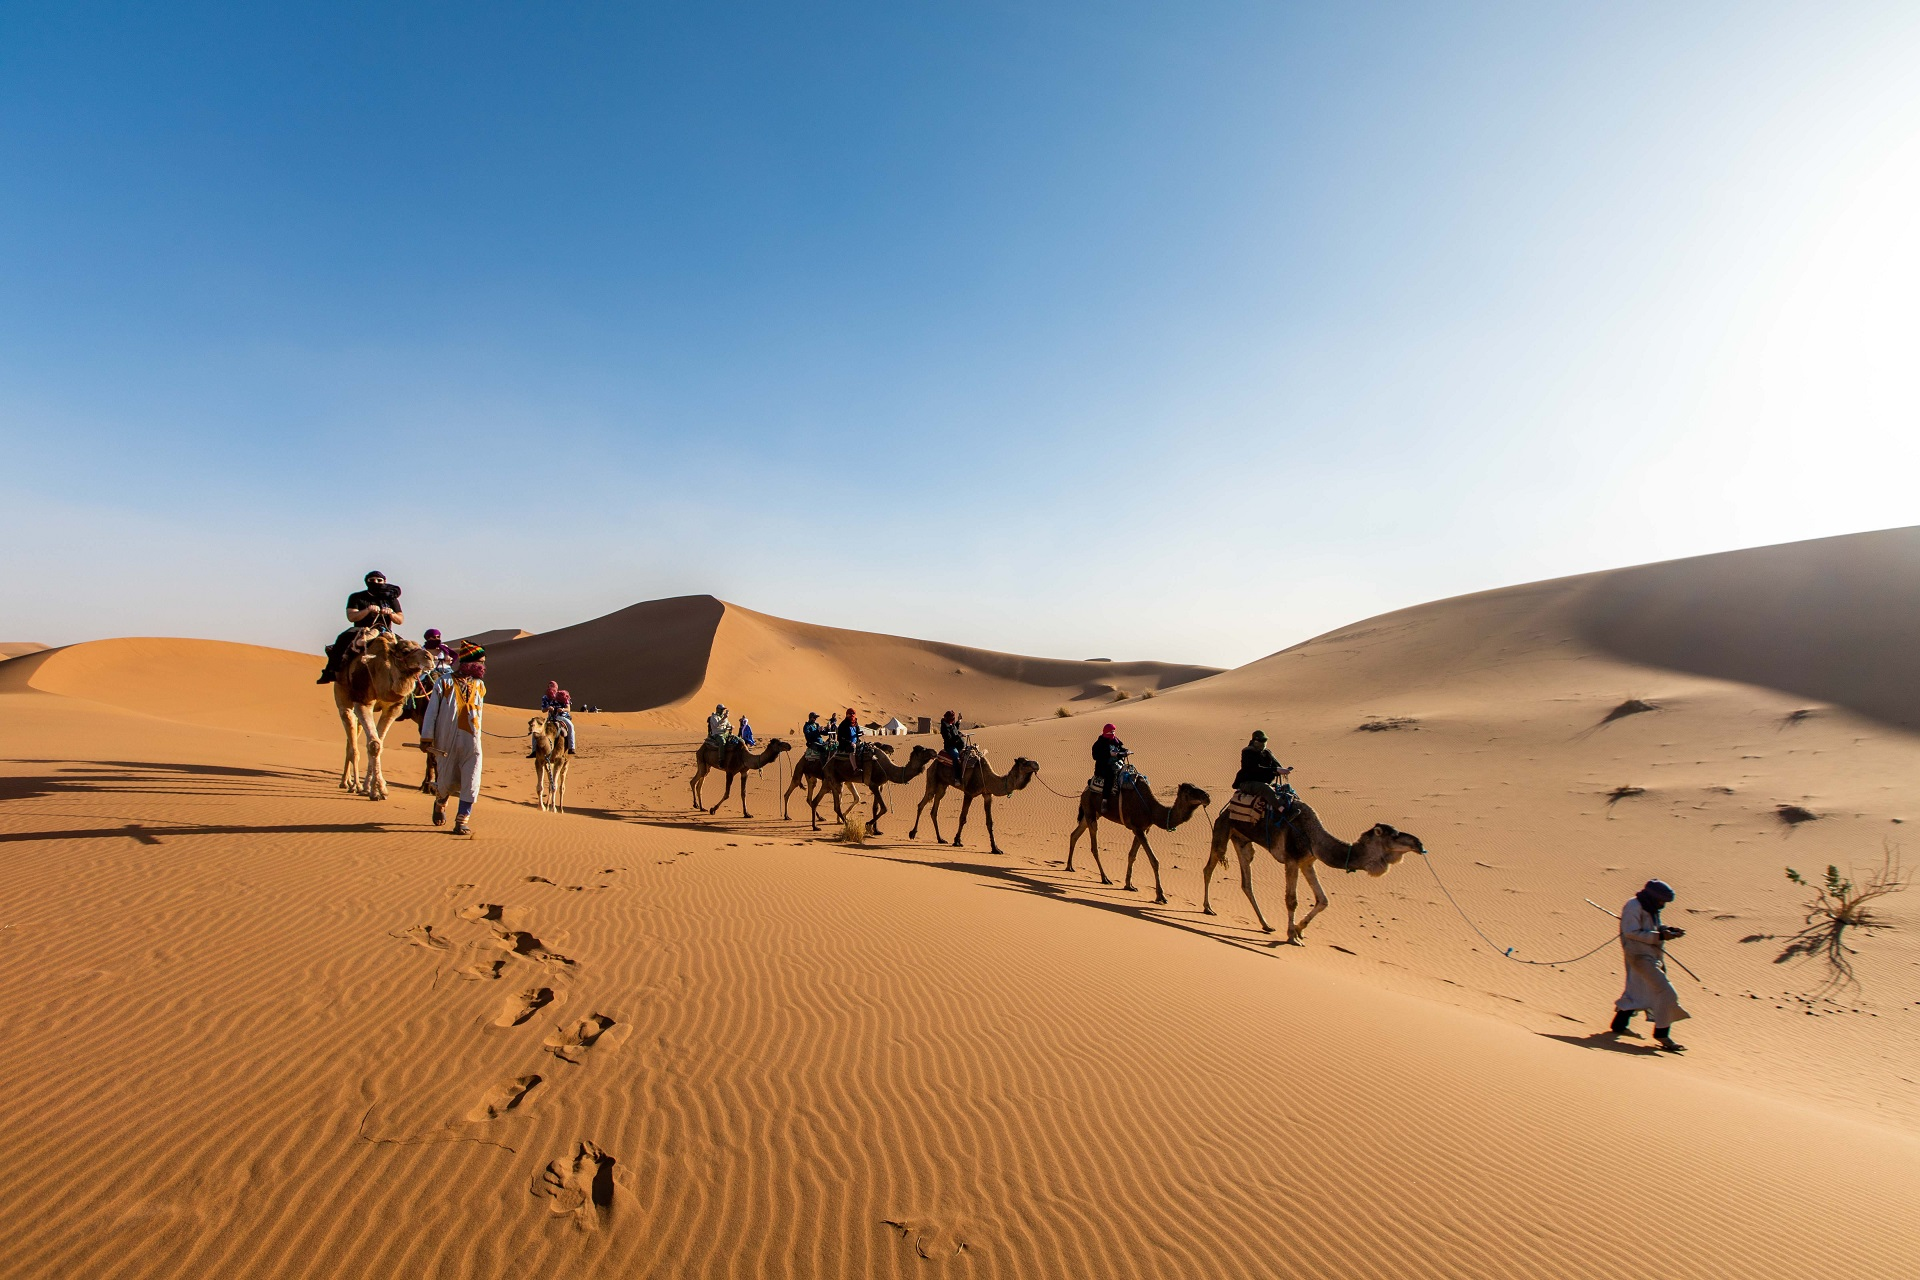 caravan-camels-with-guide-sails-across-desert-morocco